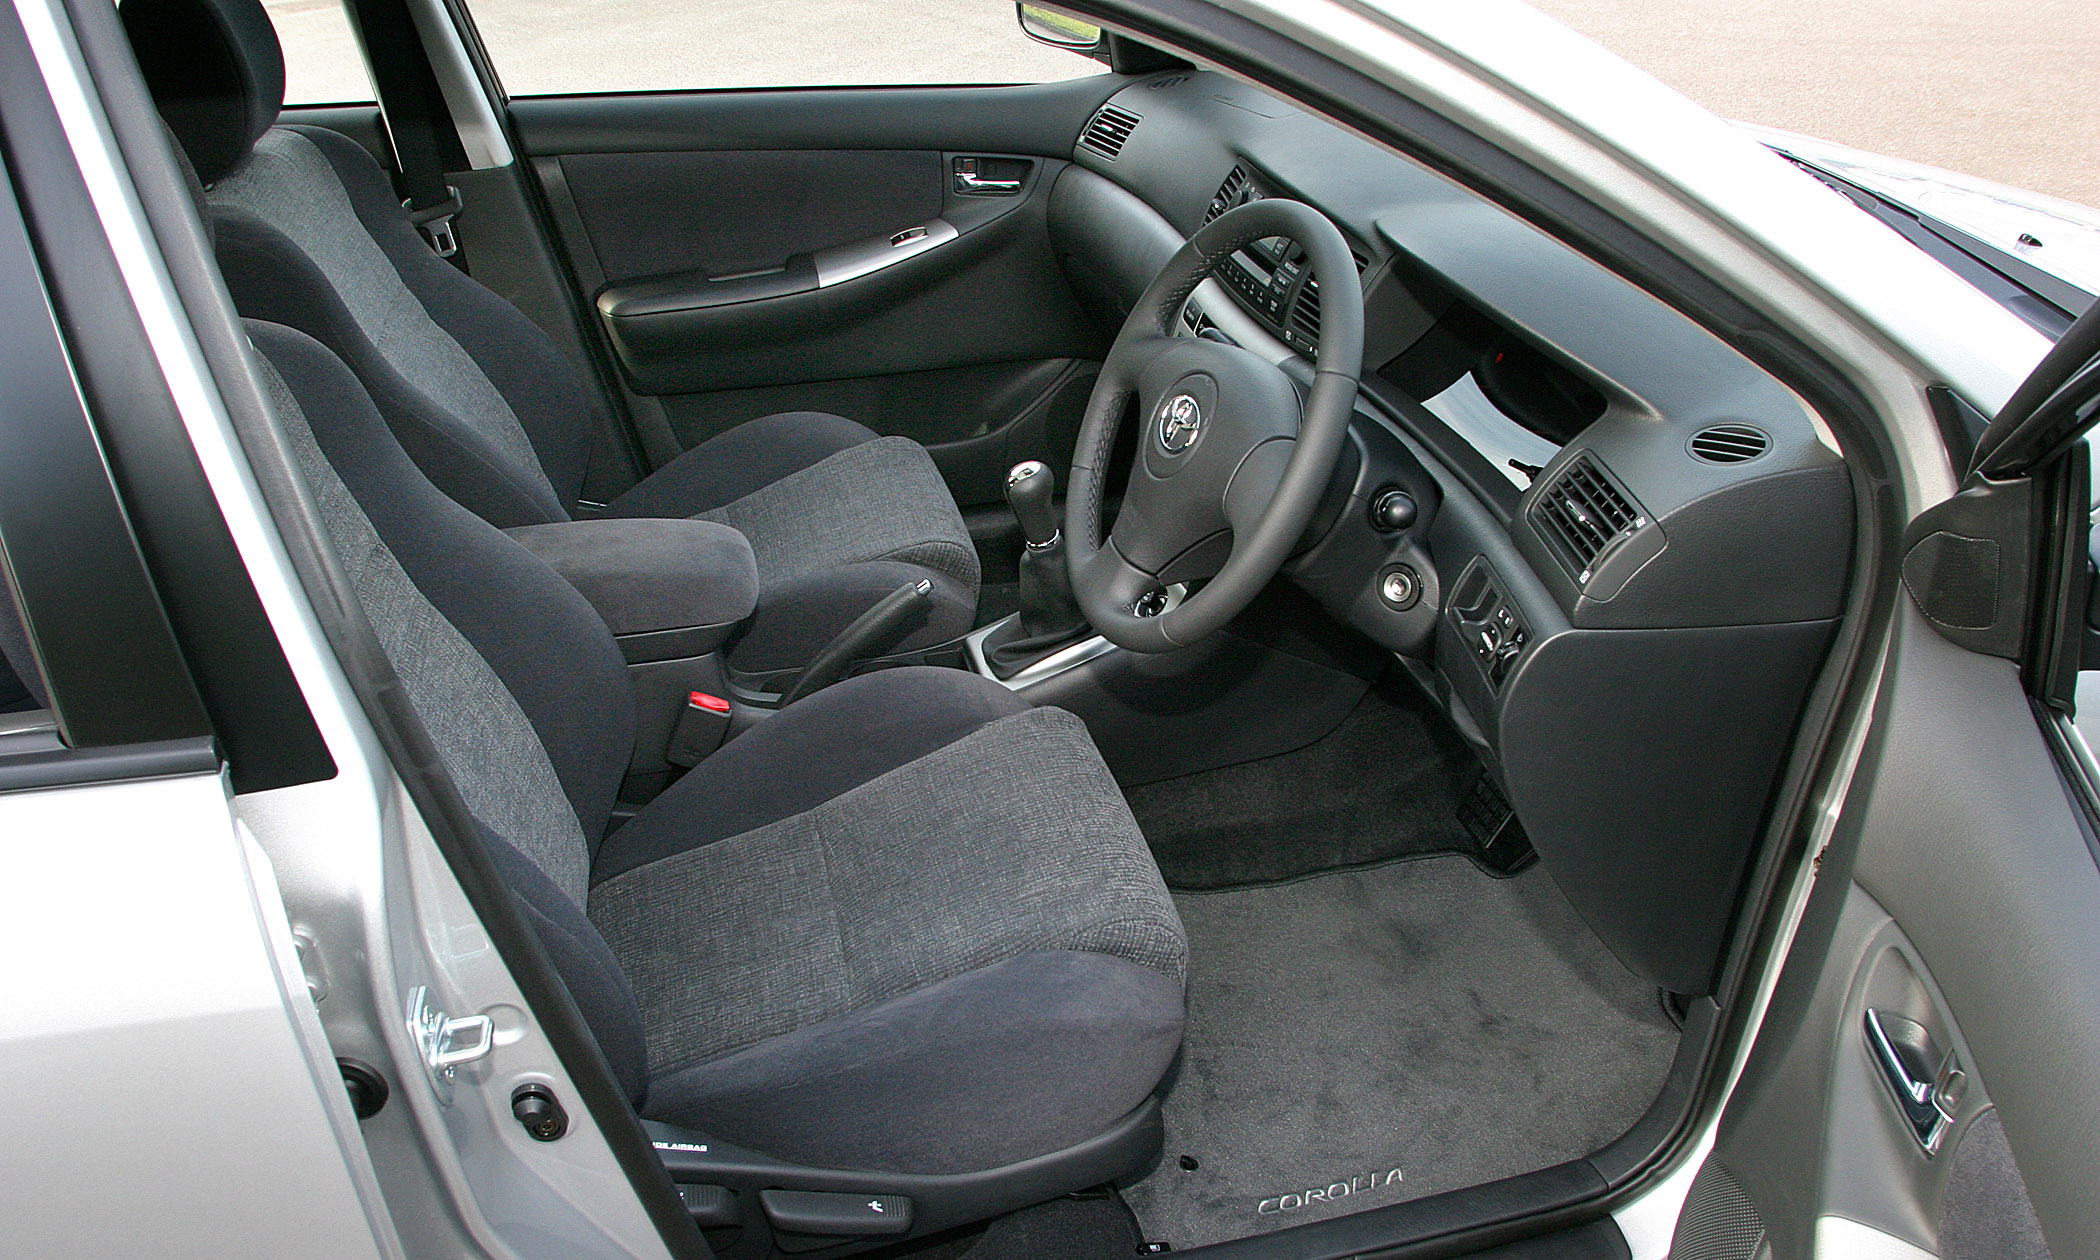 2003 Toyota Corolla 2004 Car Interior Design